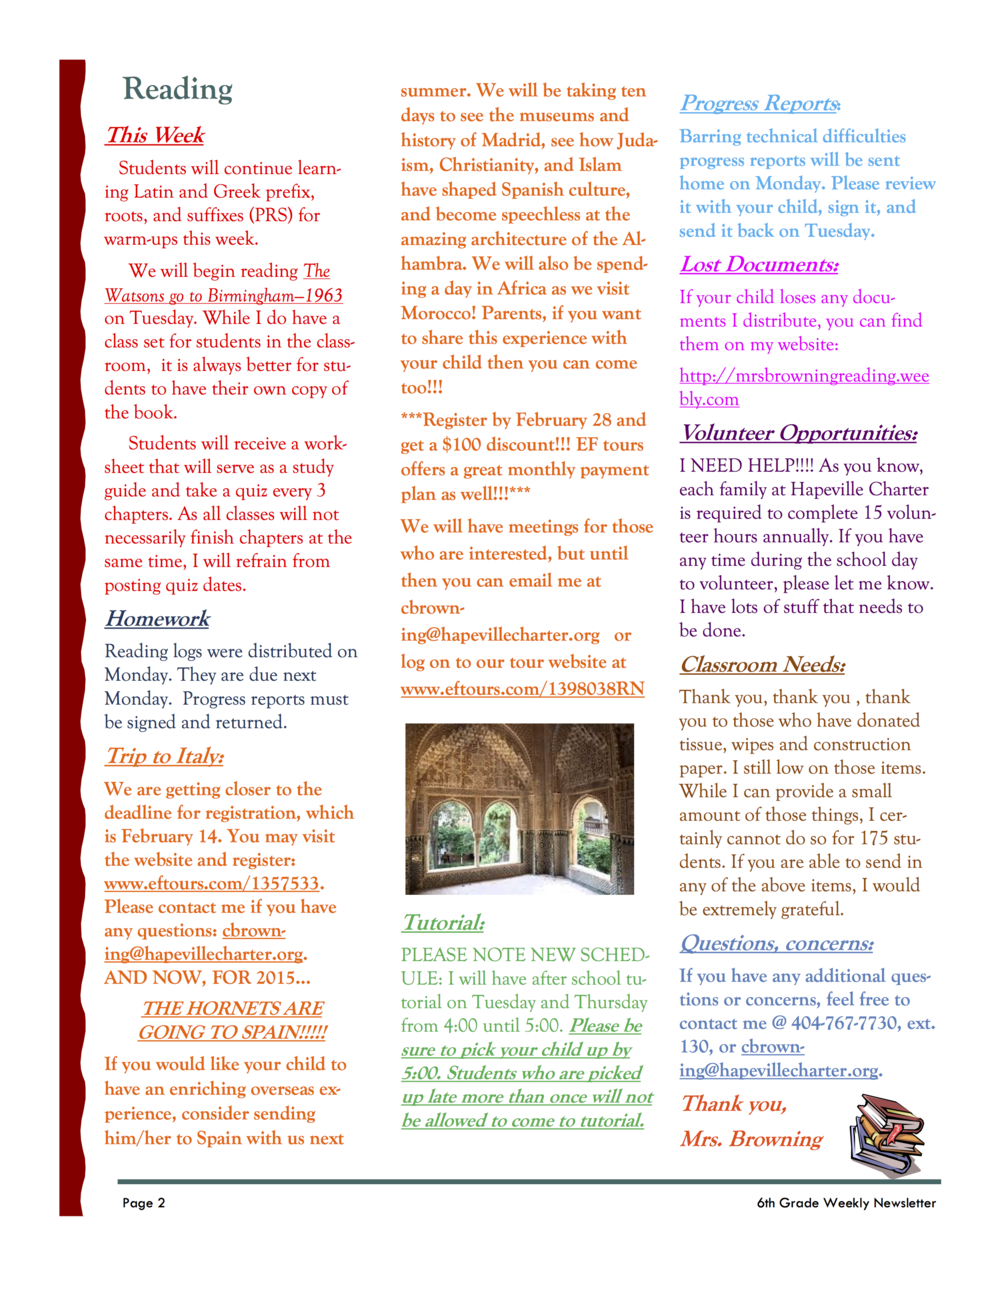 6th grade newsletter Feb 3B.png